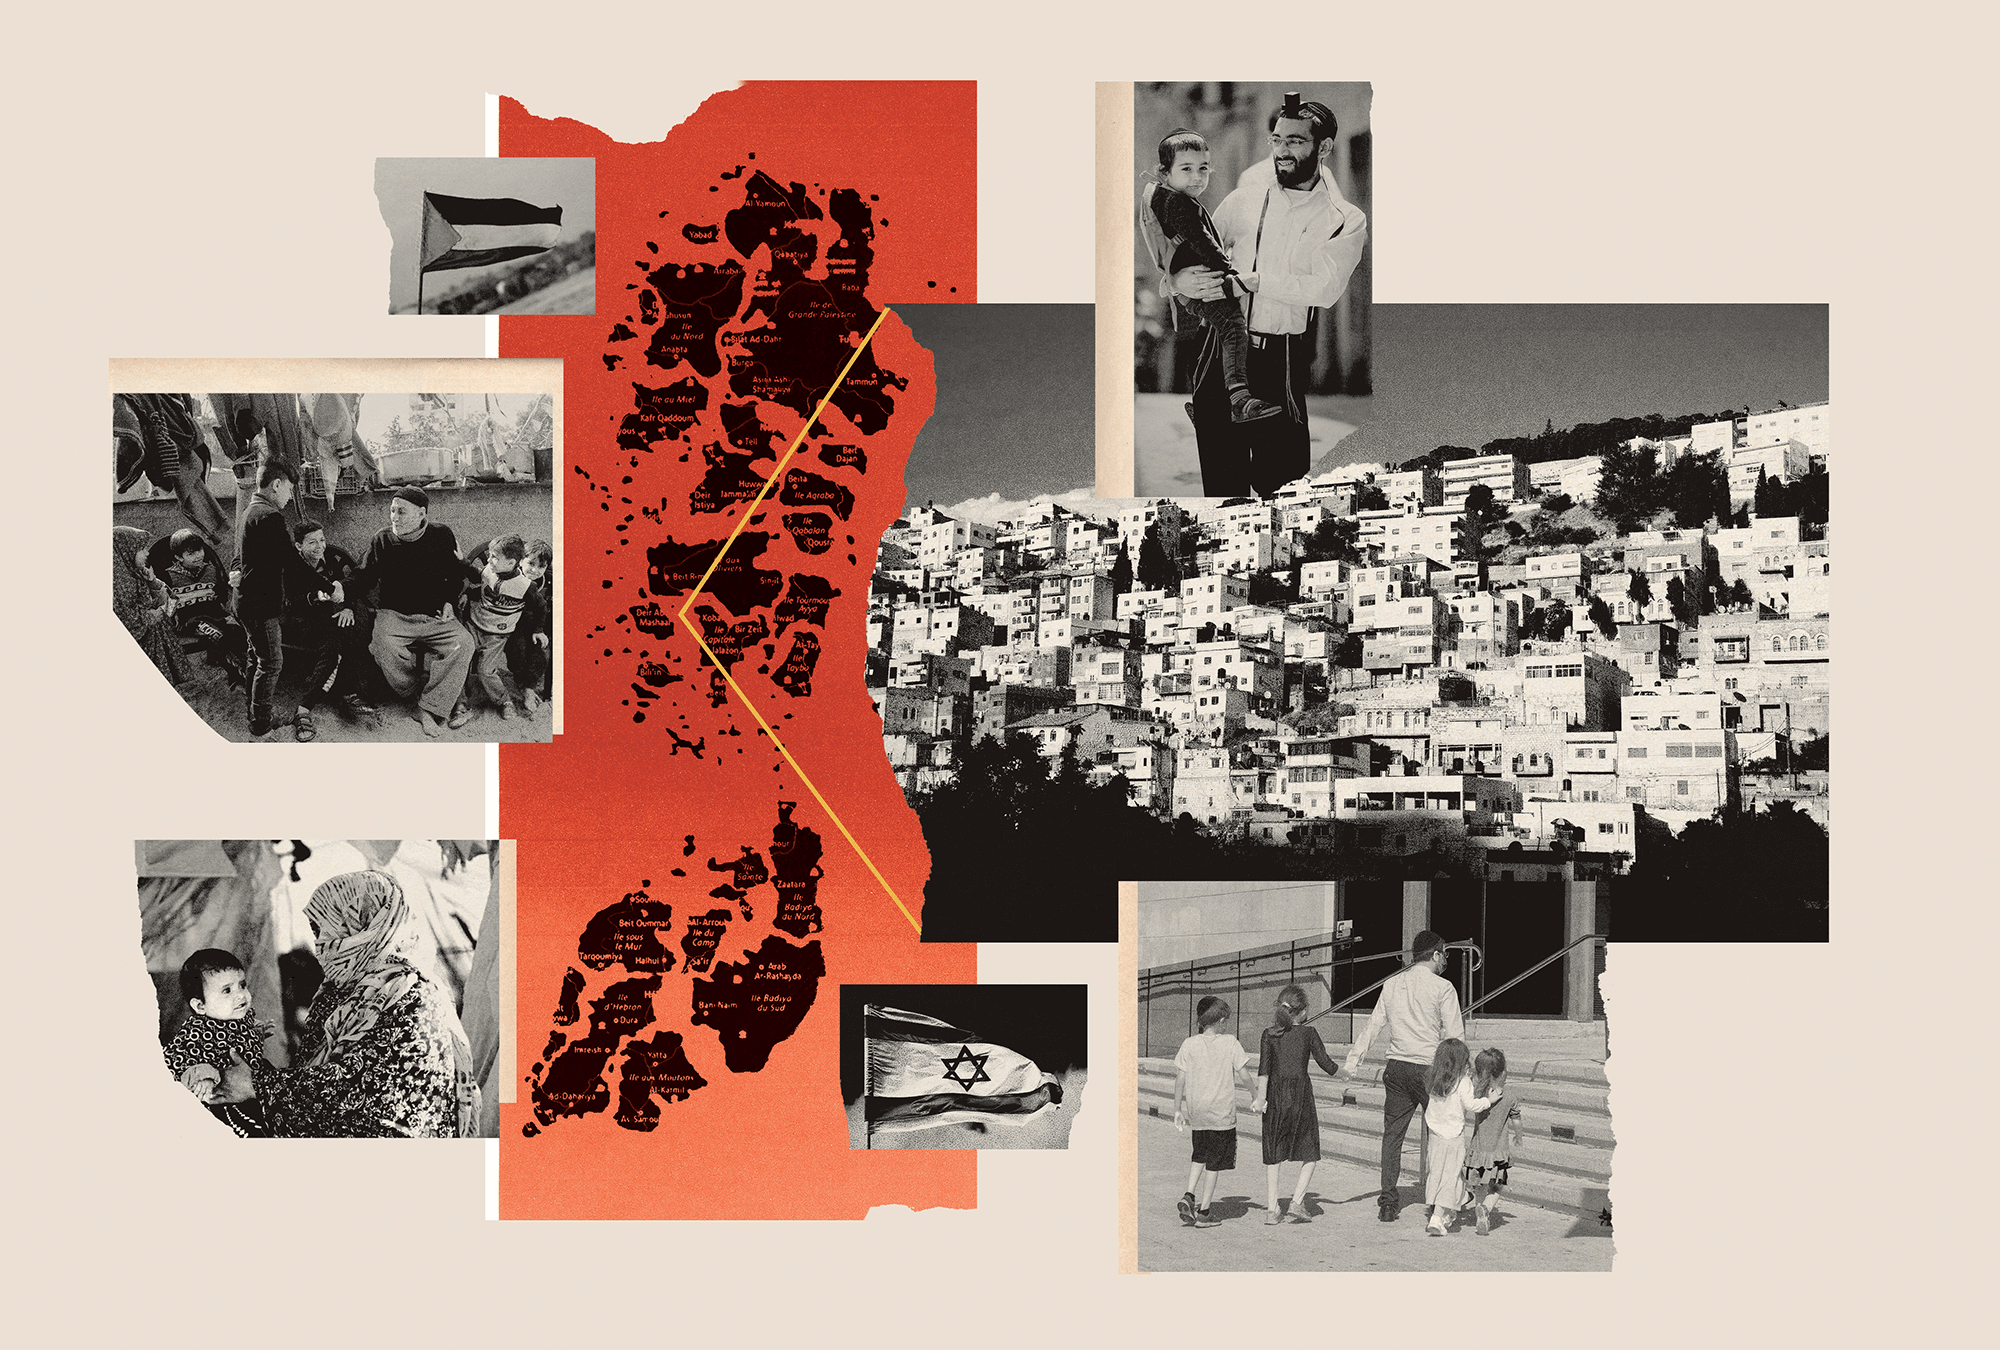 A collage of black and white photos of Palestine and Israel, featuring buildings, families, children, and flags of both places.